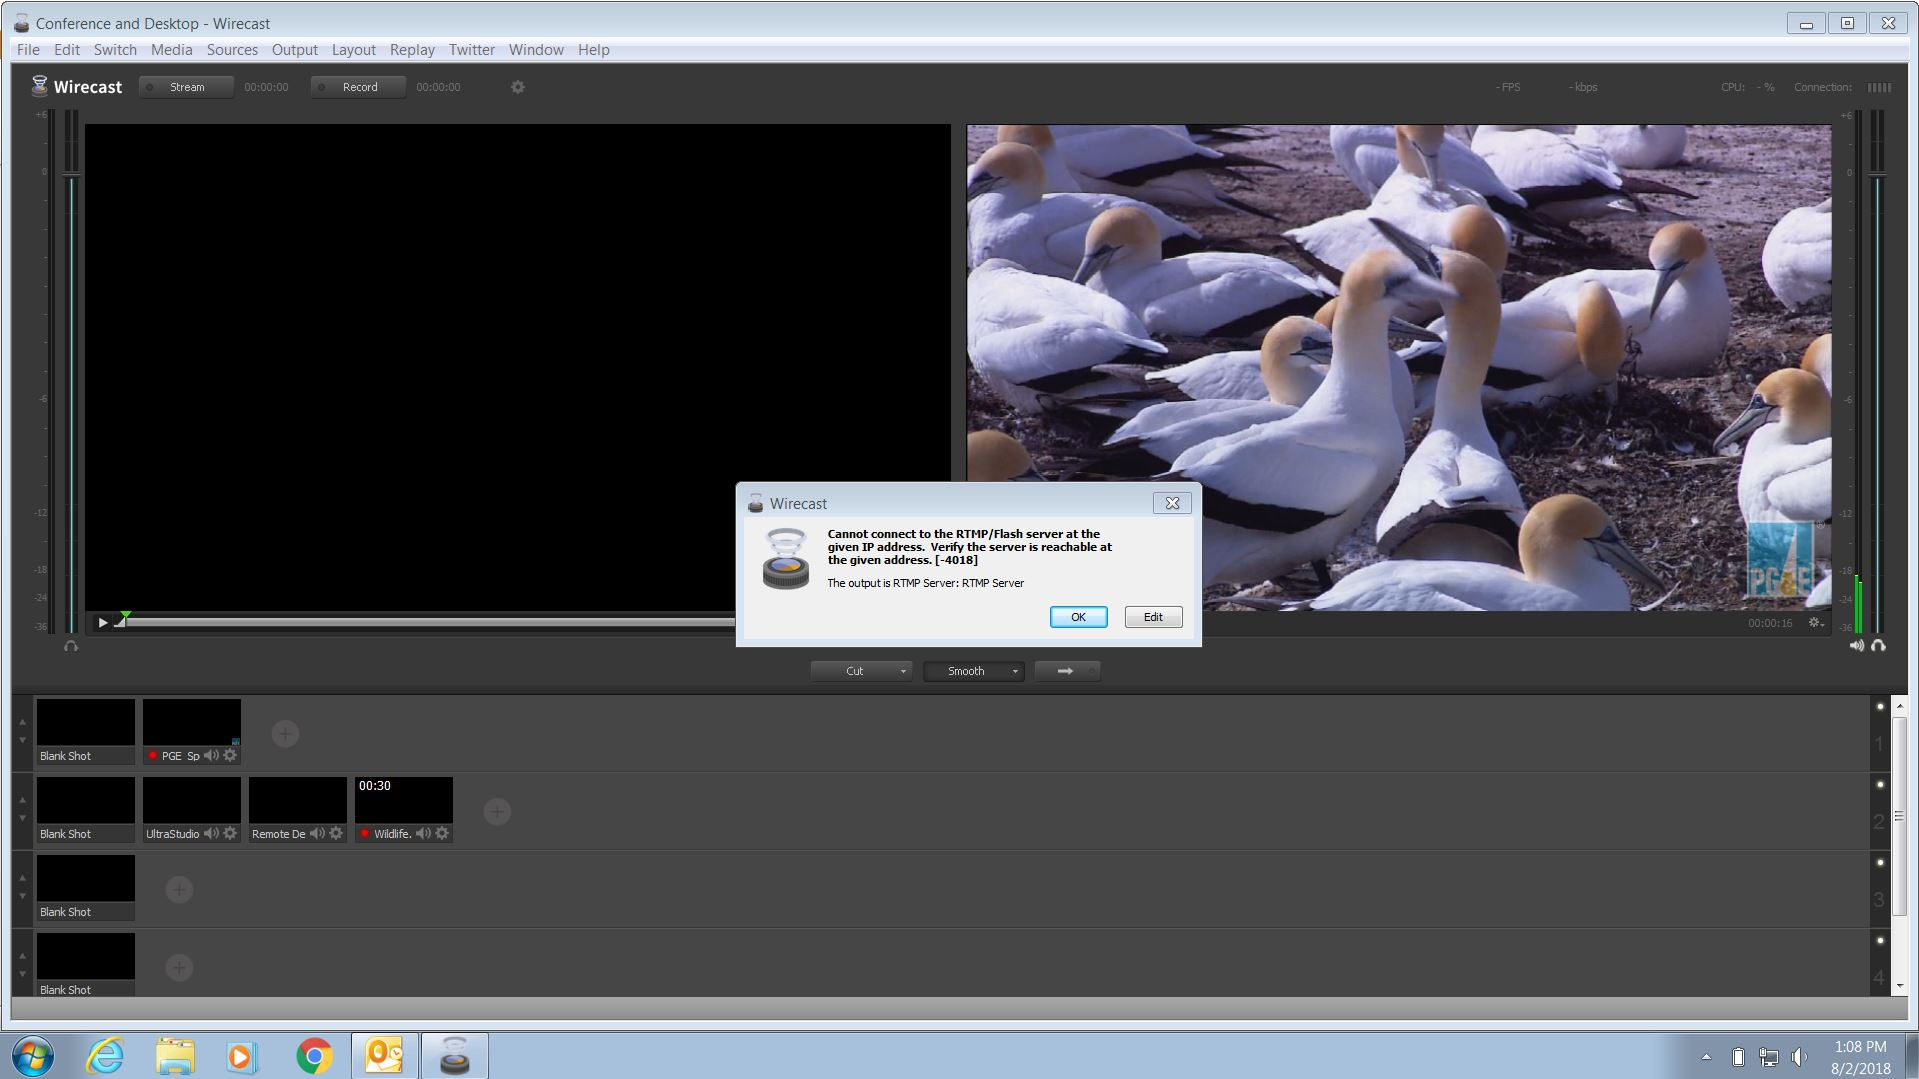 Add an RTMP address as a source for broadcast - Wirecast Capture